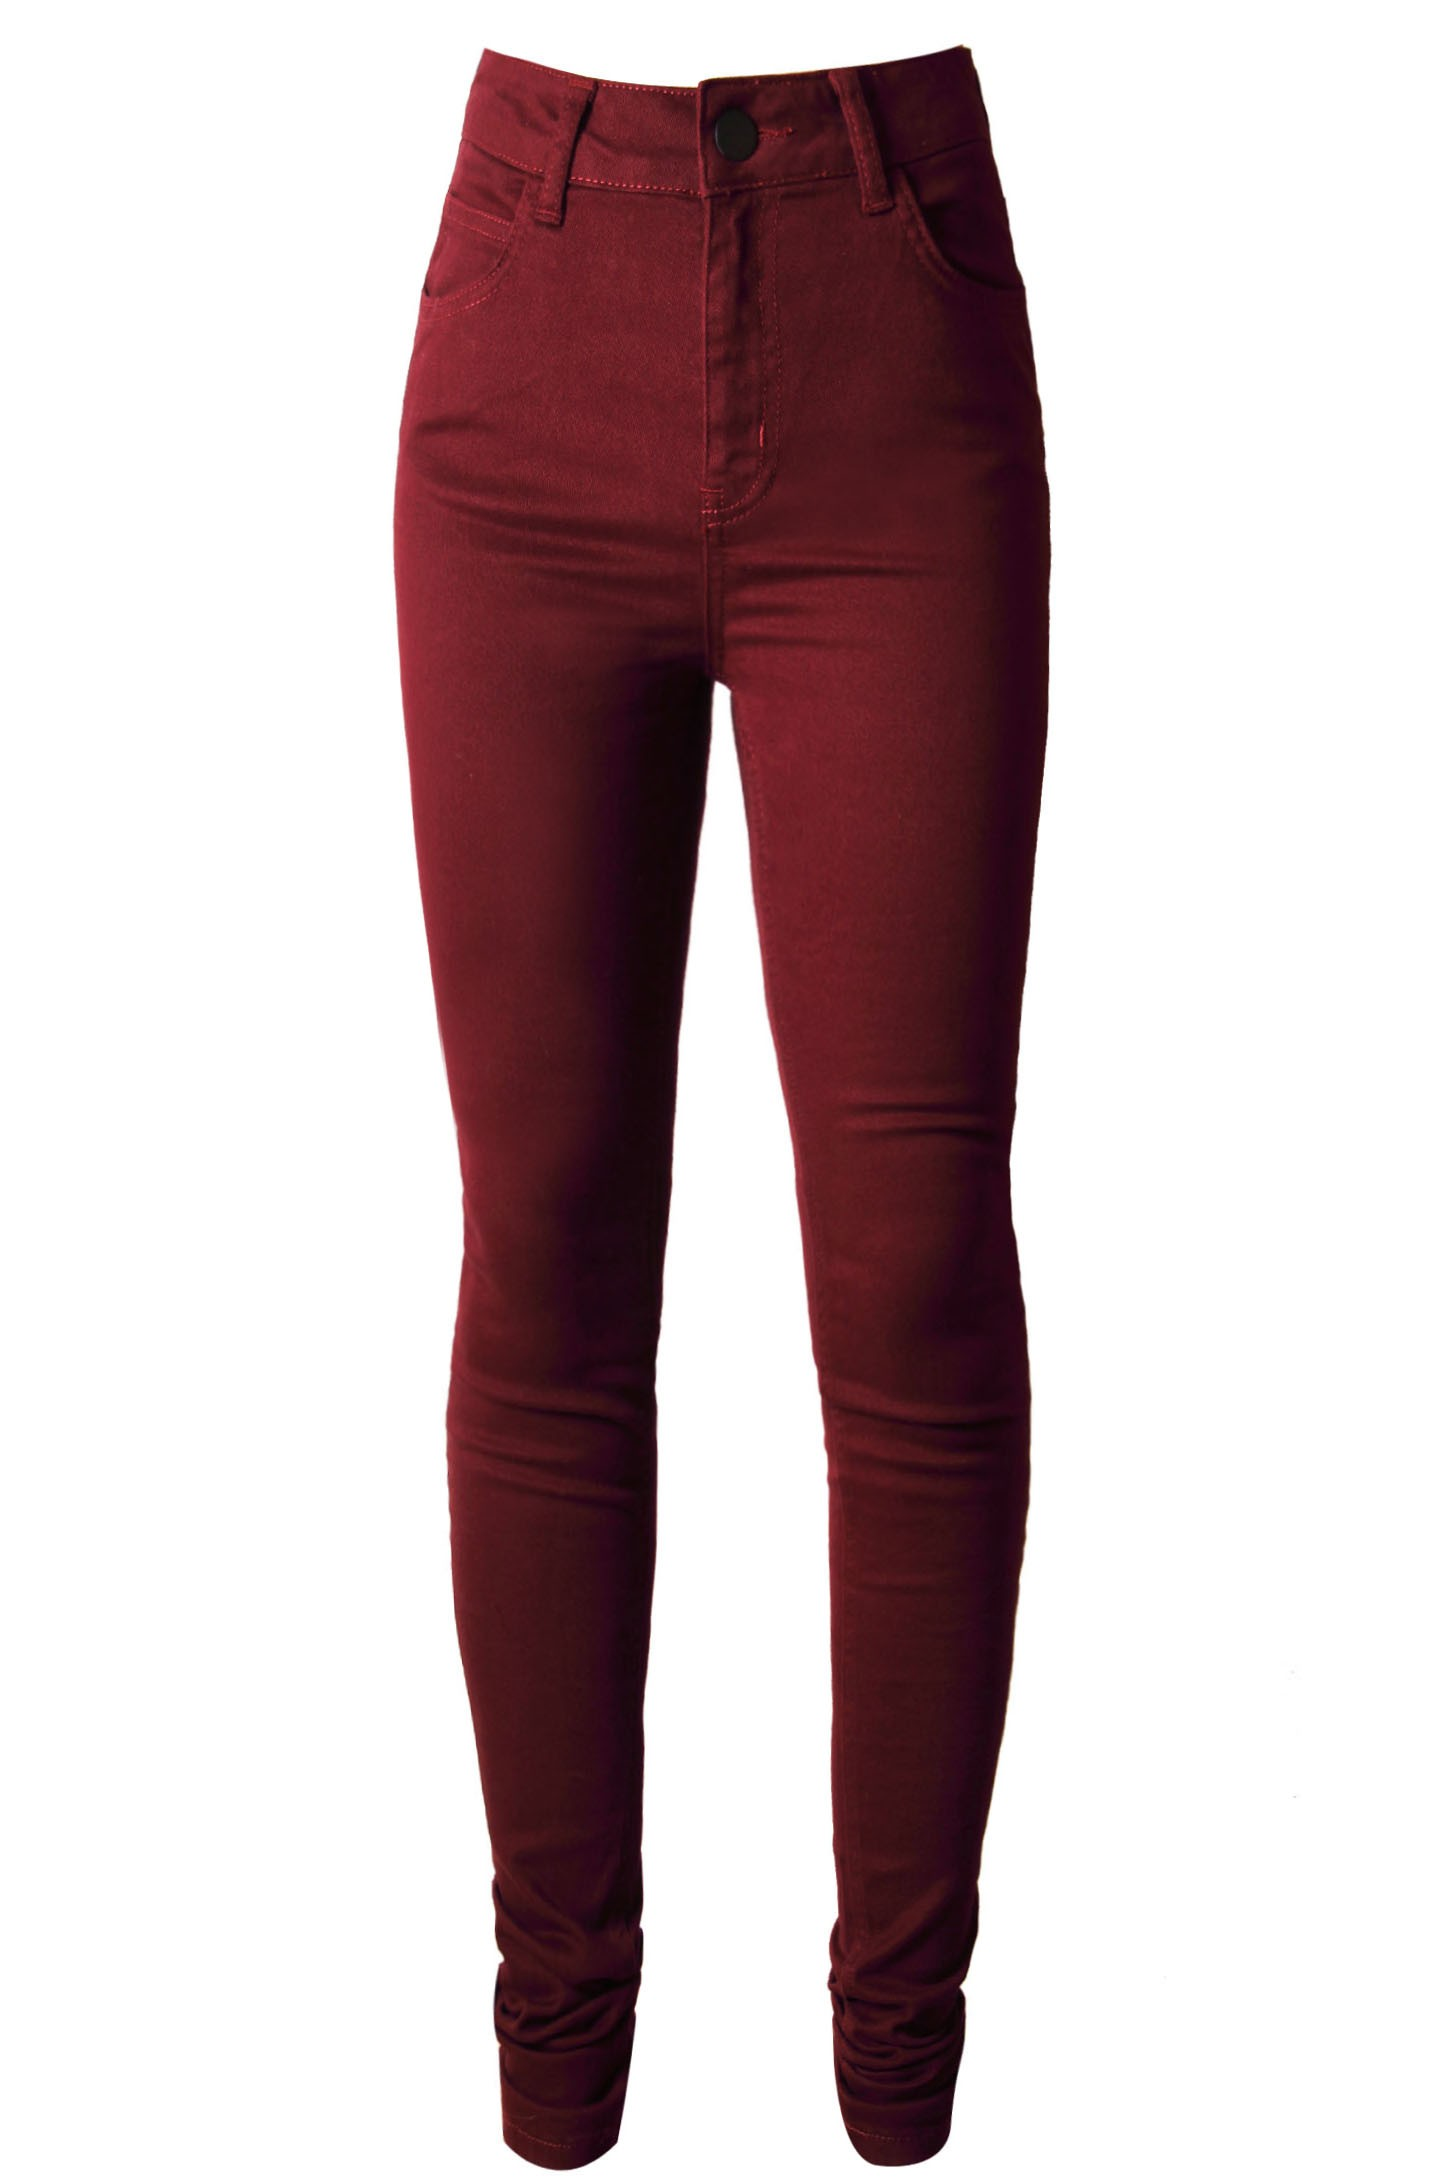 Find discount miss me jeans at ShopStyle. Shop the latest collection of discount miss me jeans from the most popular stores - all in one place. Size Regular 23 7 24 28 25 81 26 94 27 89 28 81 29 75 30 62 31 43 32 16 33 7.